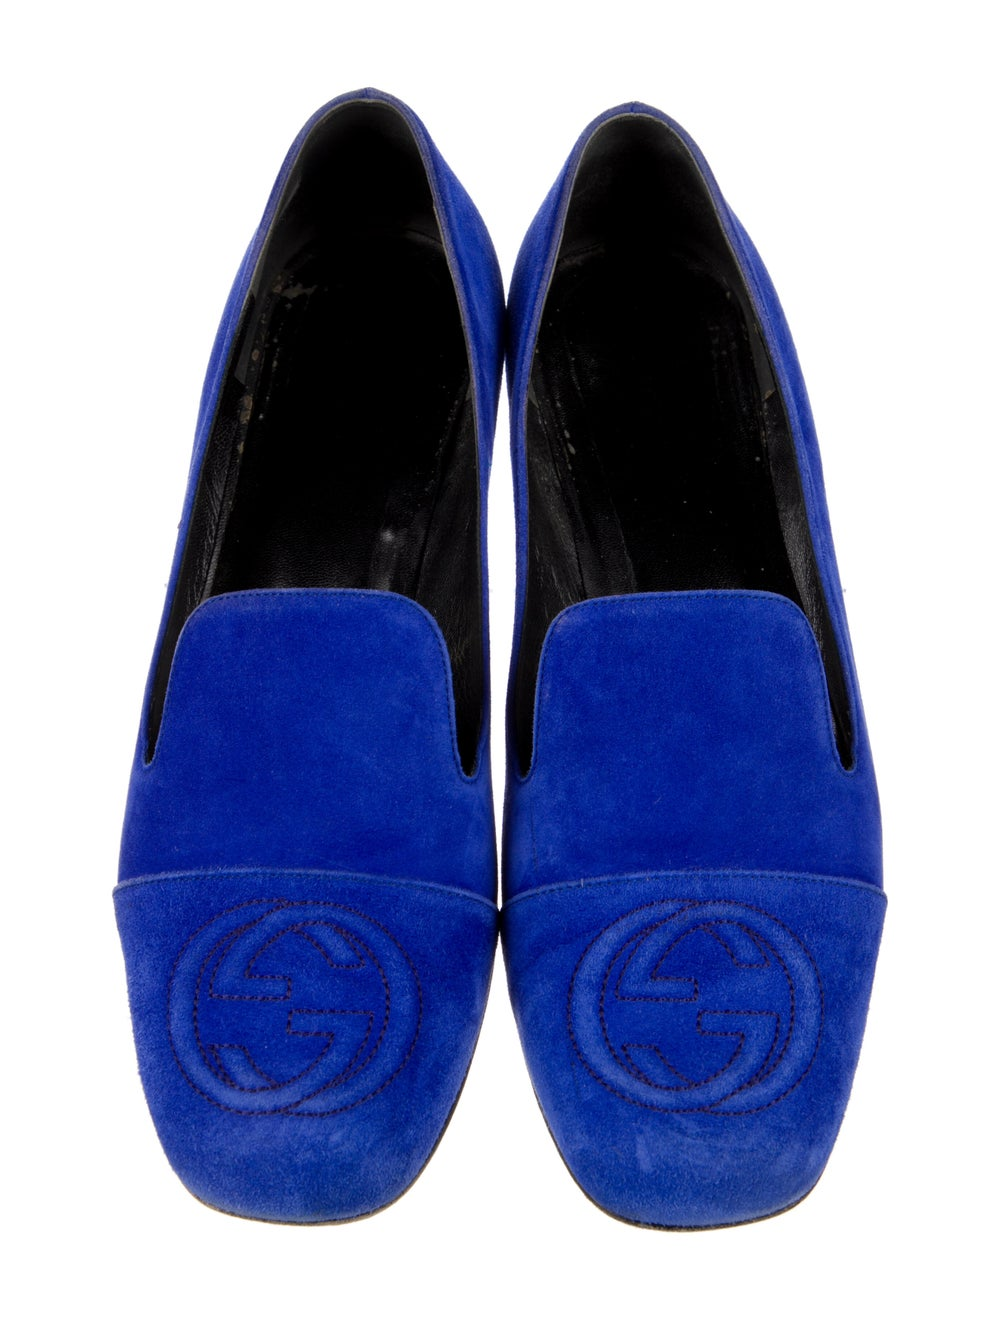 Gucci Suede Loafers Blue - image 3